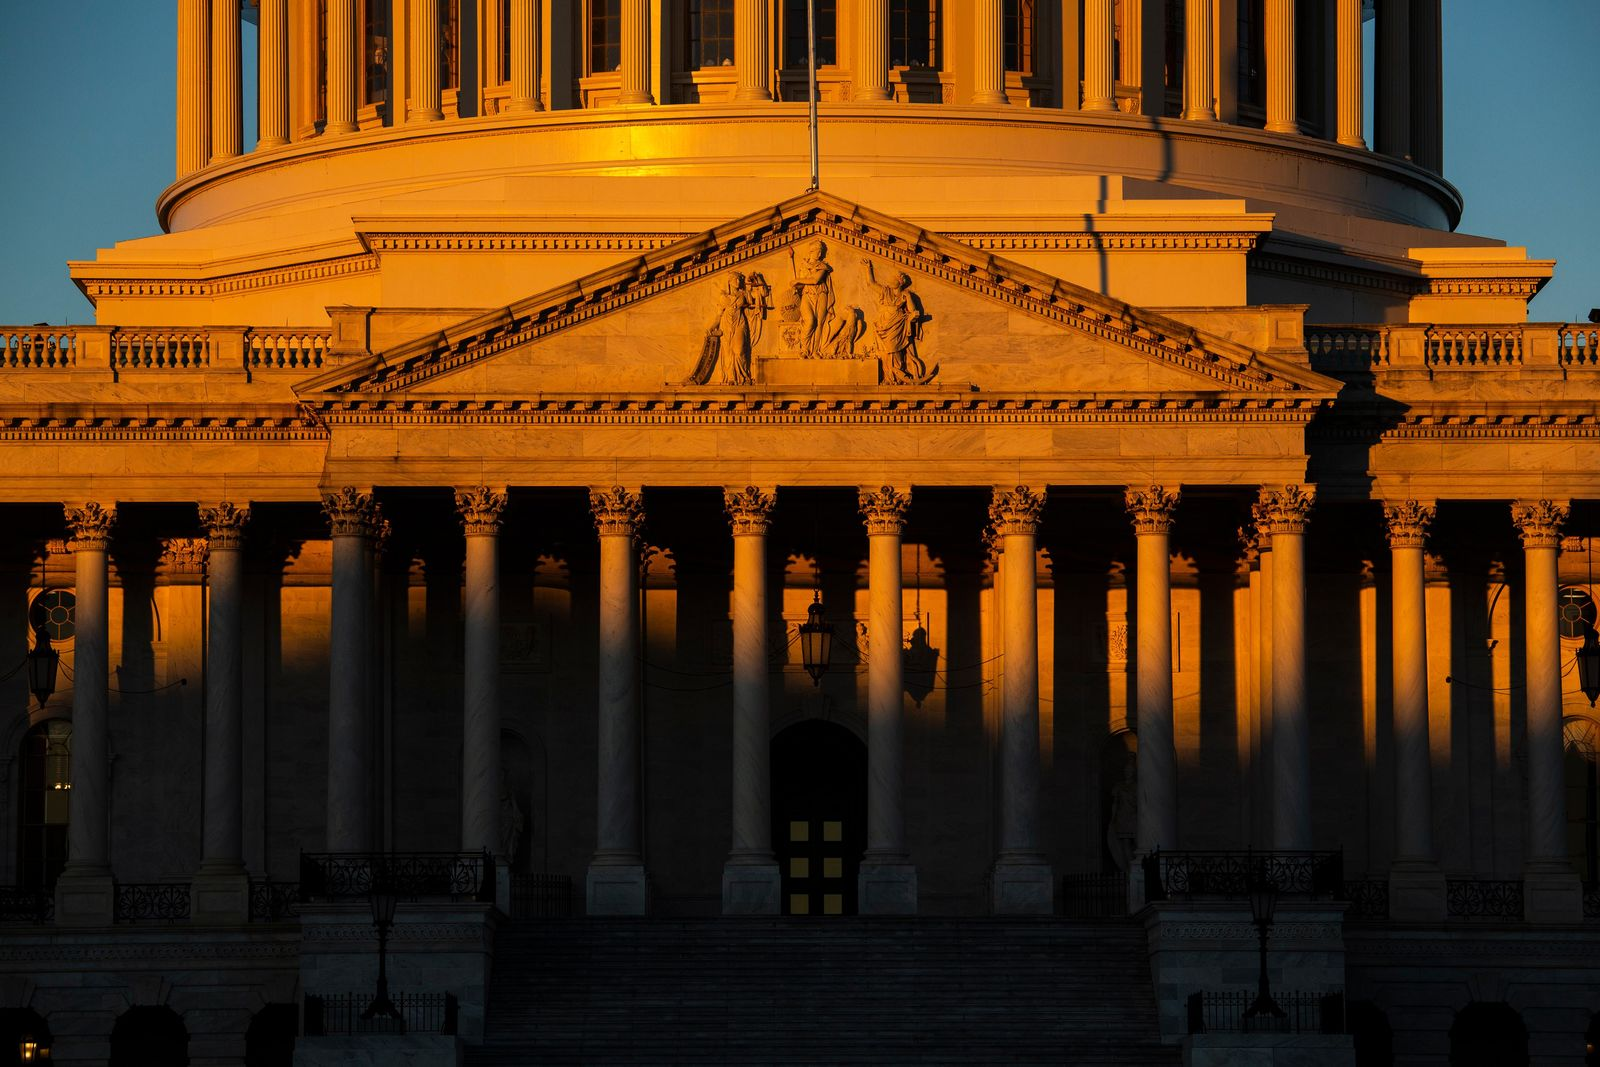 The Capitol is seen at dawn on the 21st day of a partial government shutdown as an impasse continues between President Donald Trump and Democrats over funding his promised wall on the U.S.-Mexico border, in Washington, Friday, Jan. 11, 2019. (AP Photo/J. Scott Applewhite)